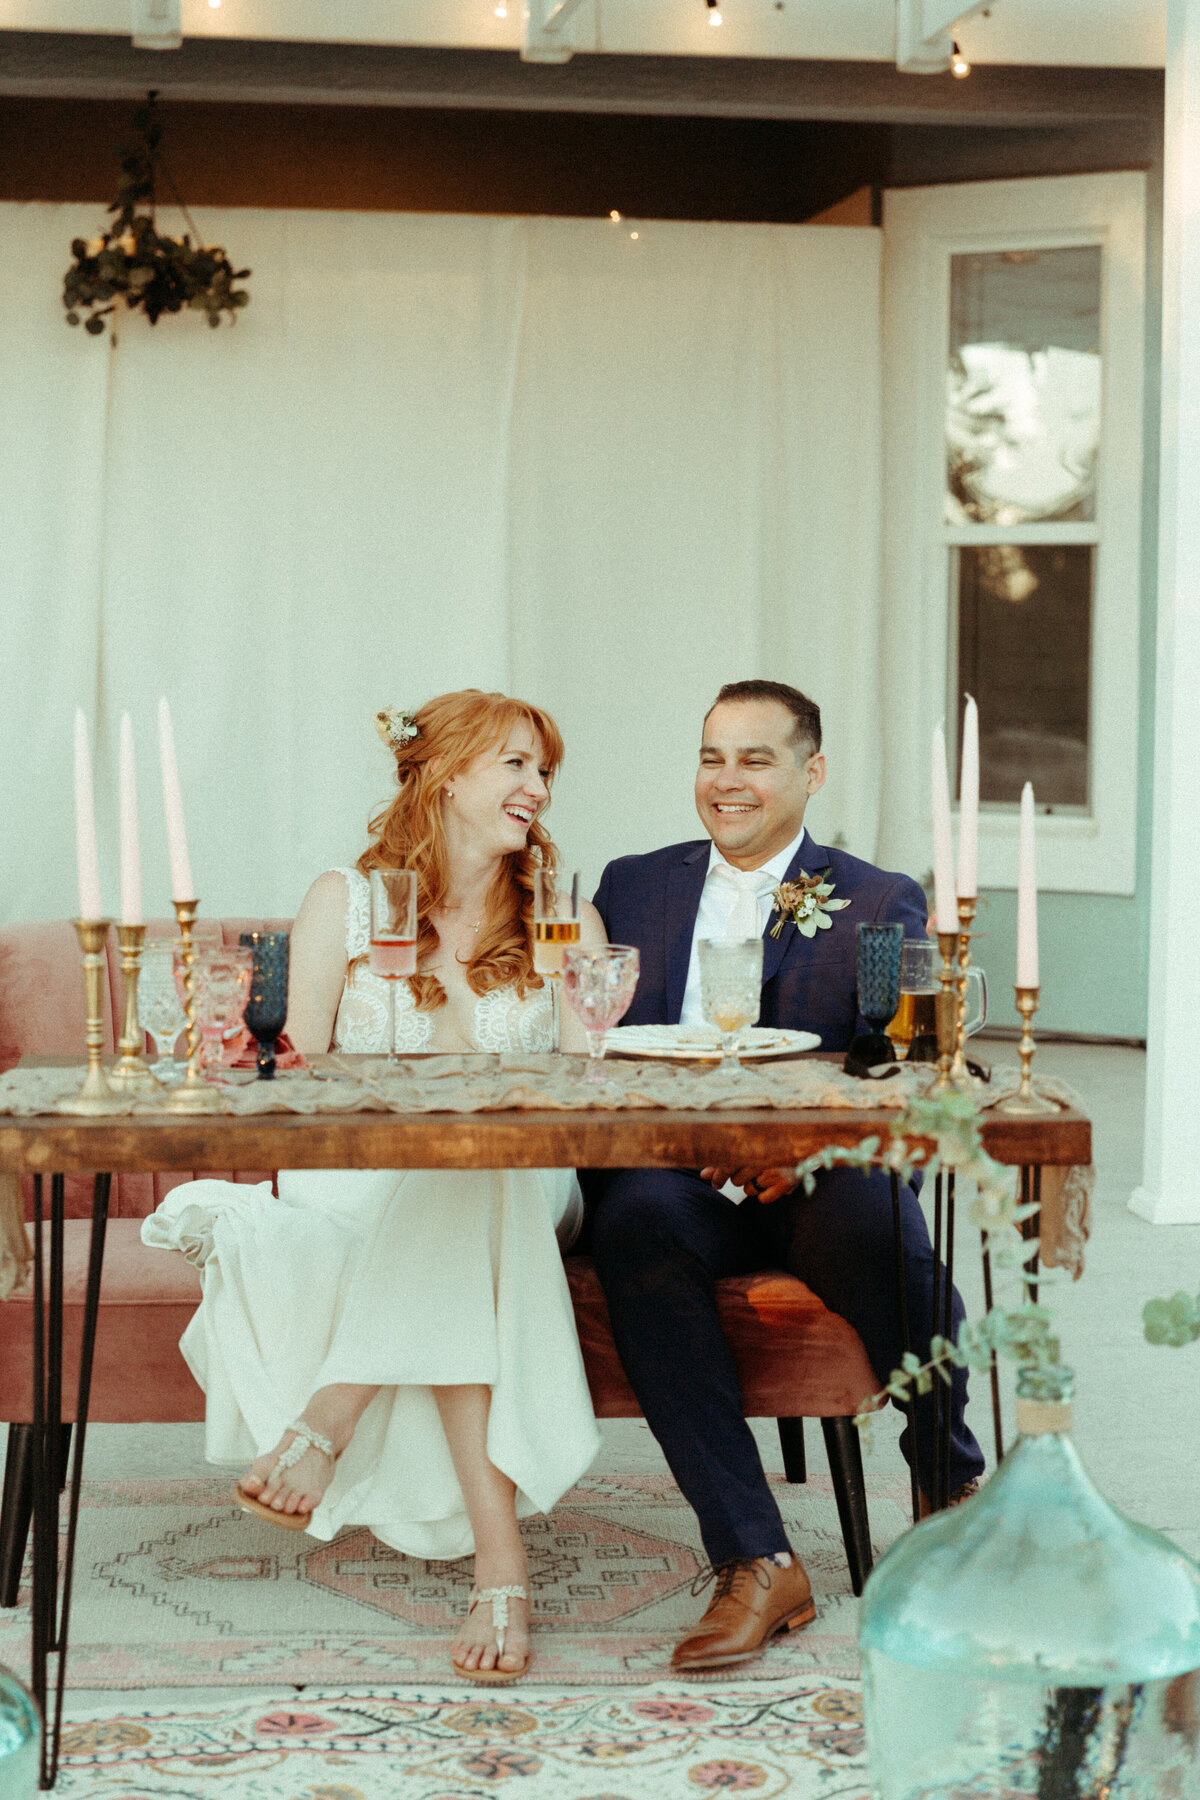 California-elopement-photographer-Autumn-Marie-1-3